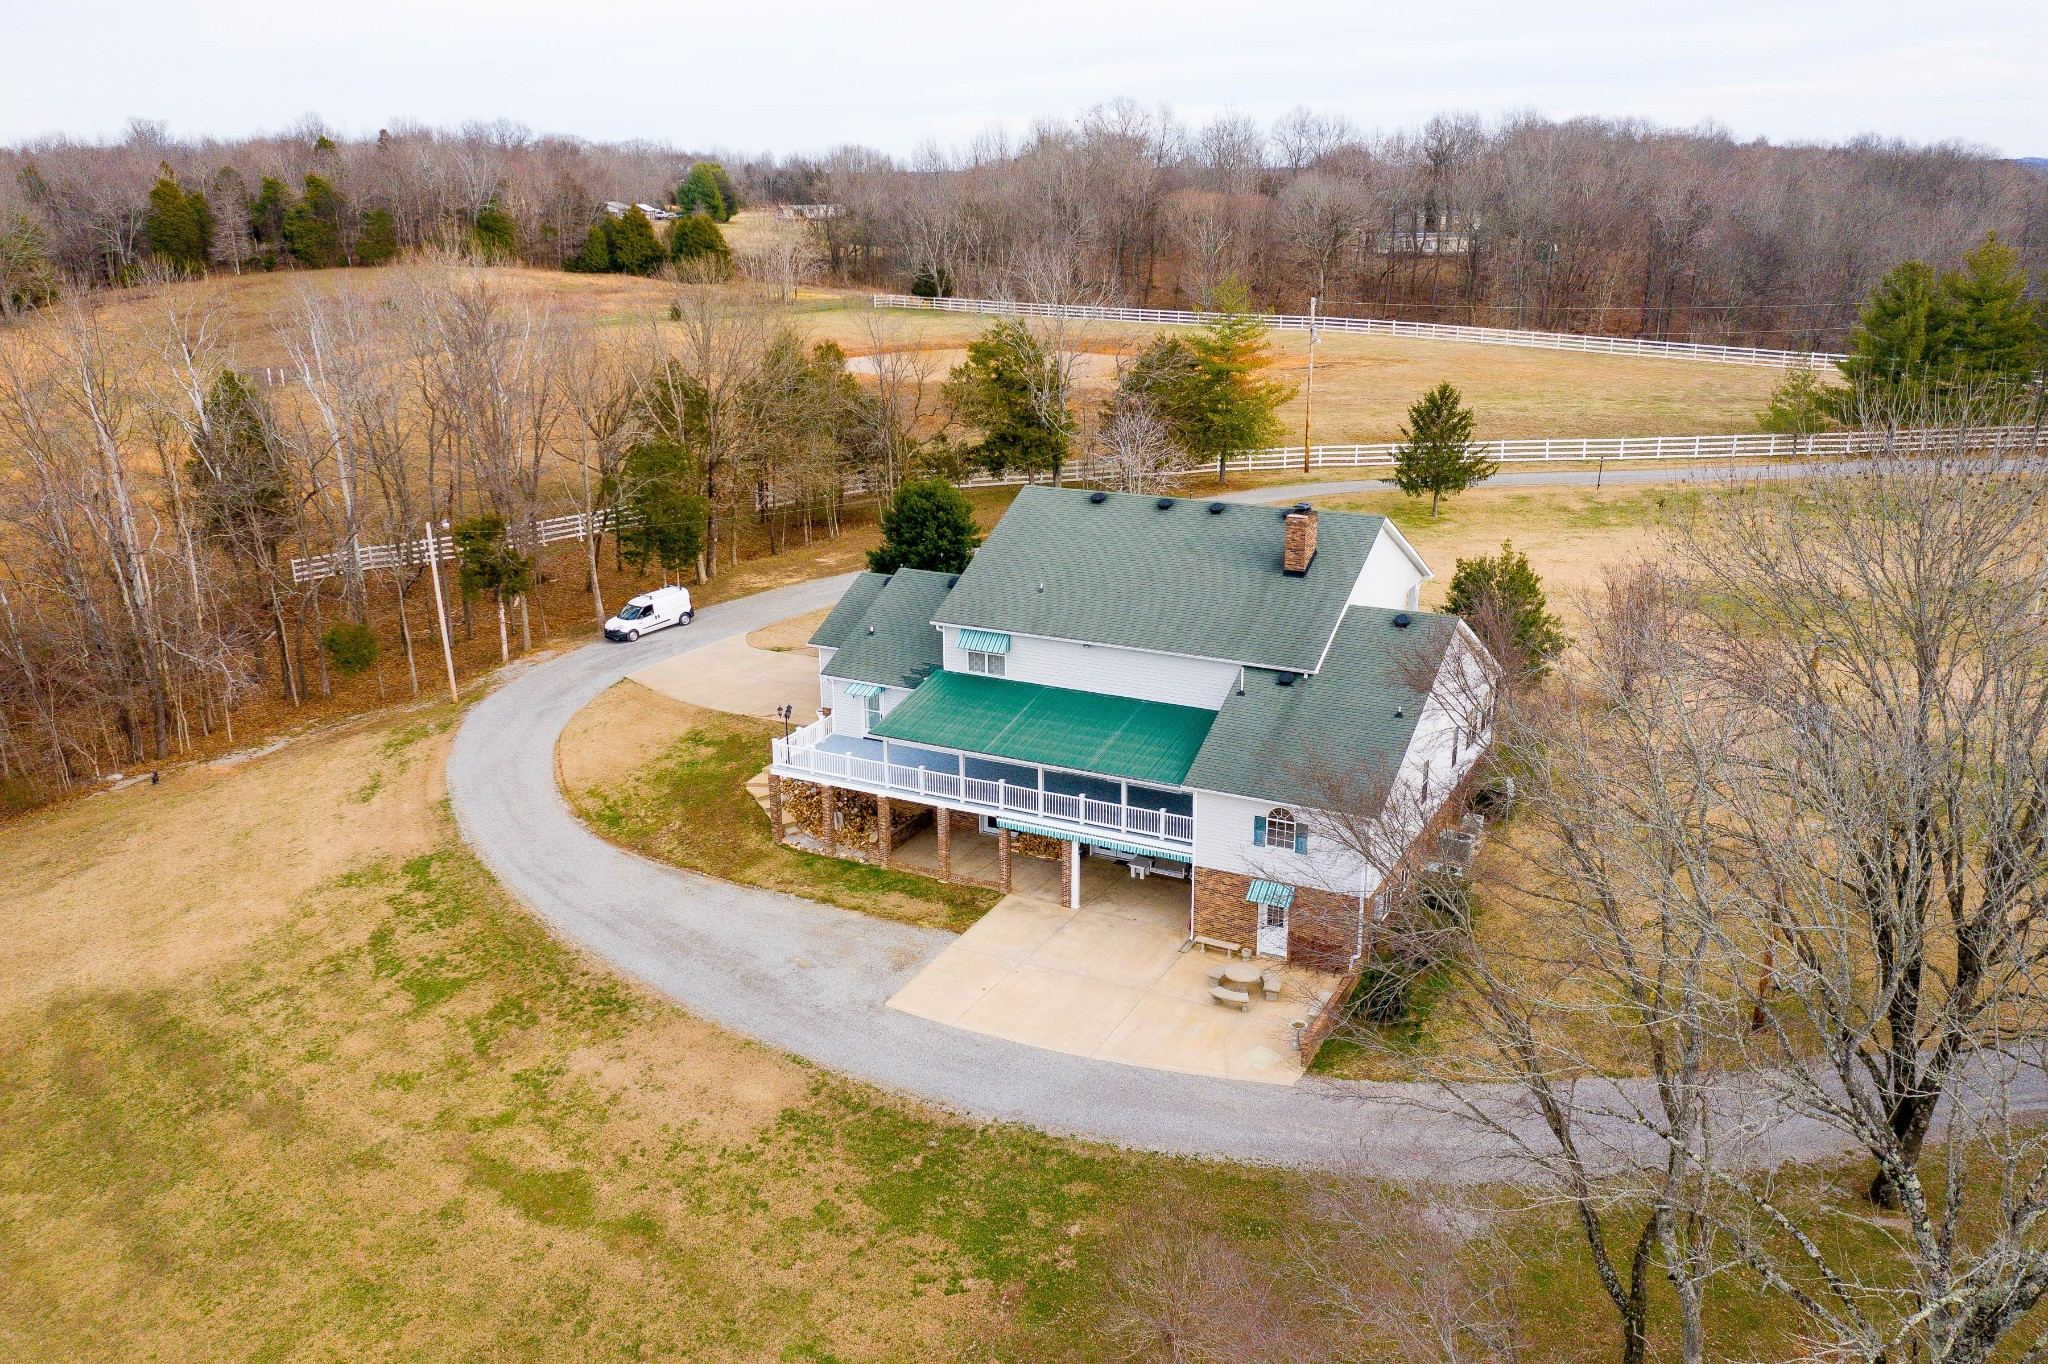 176 N Deer View LN Property Photo - Clarksville, TN real estate listing